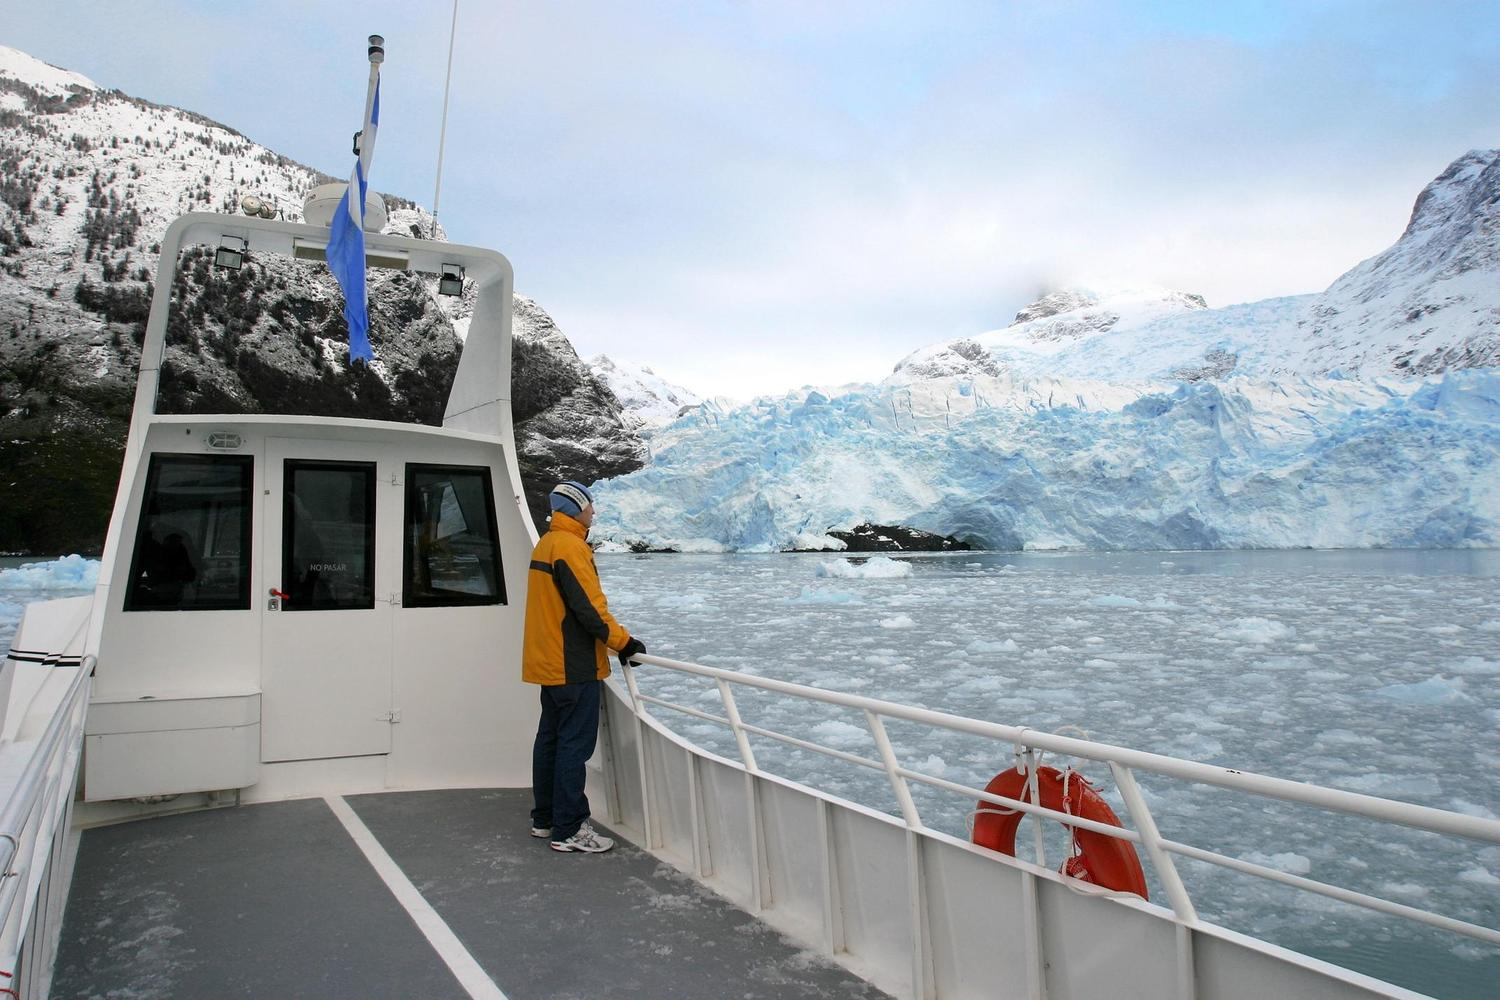 In front of the Upsala Glacier, Patagonia